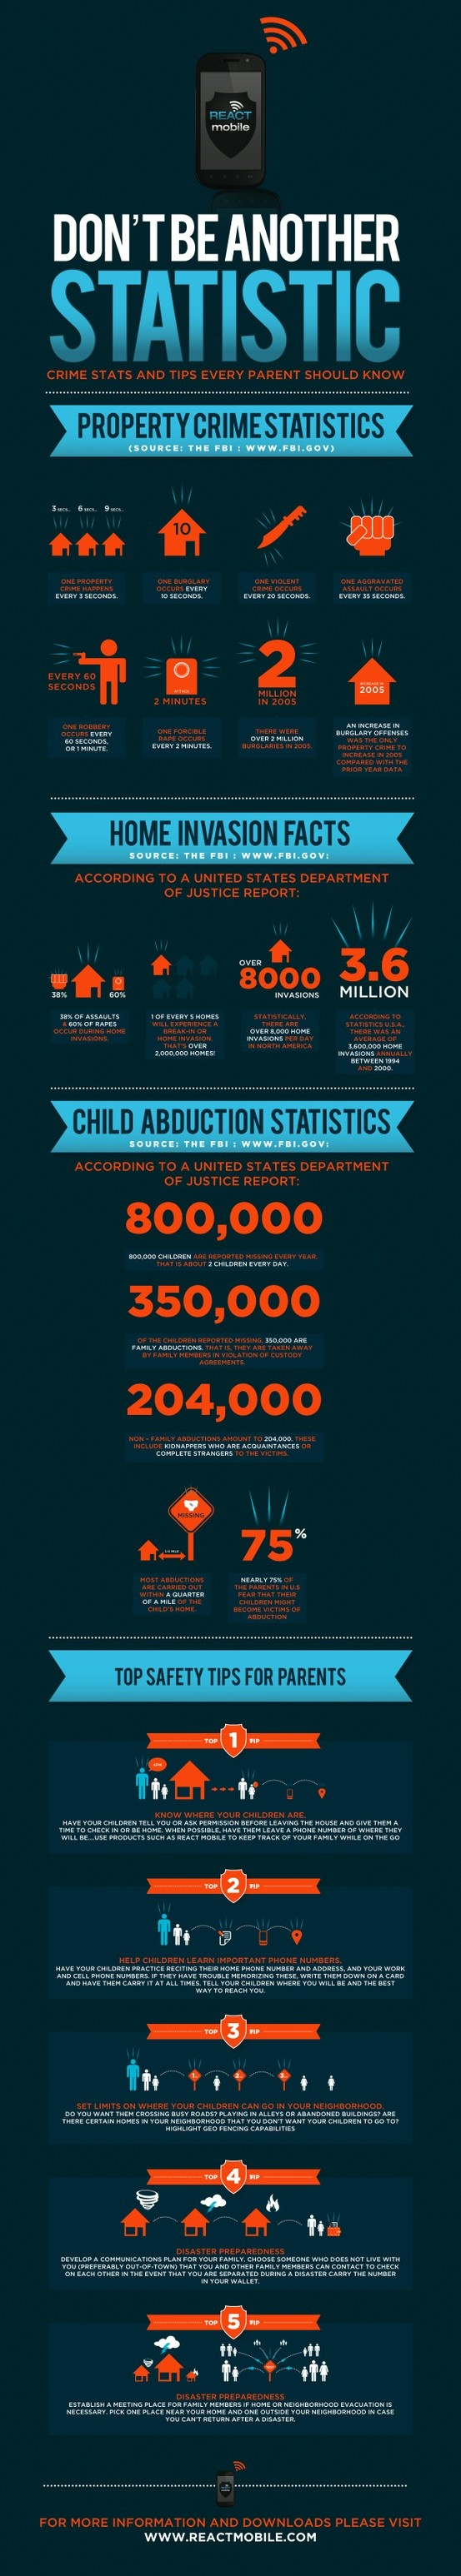 Child abduction stats infographic.